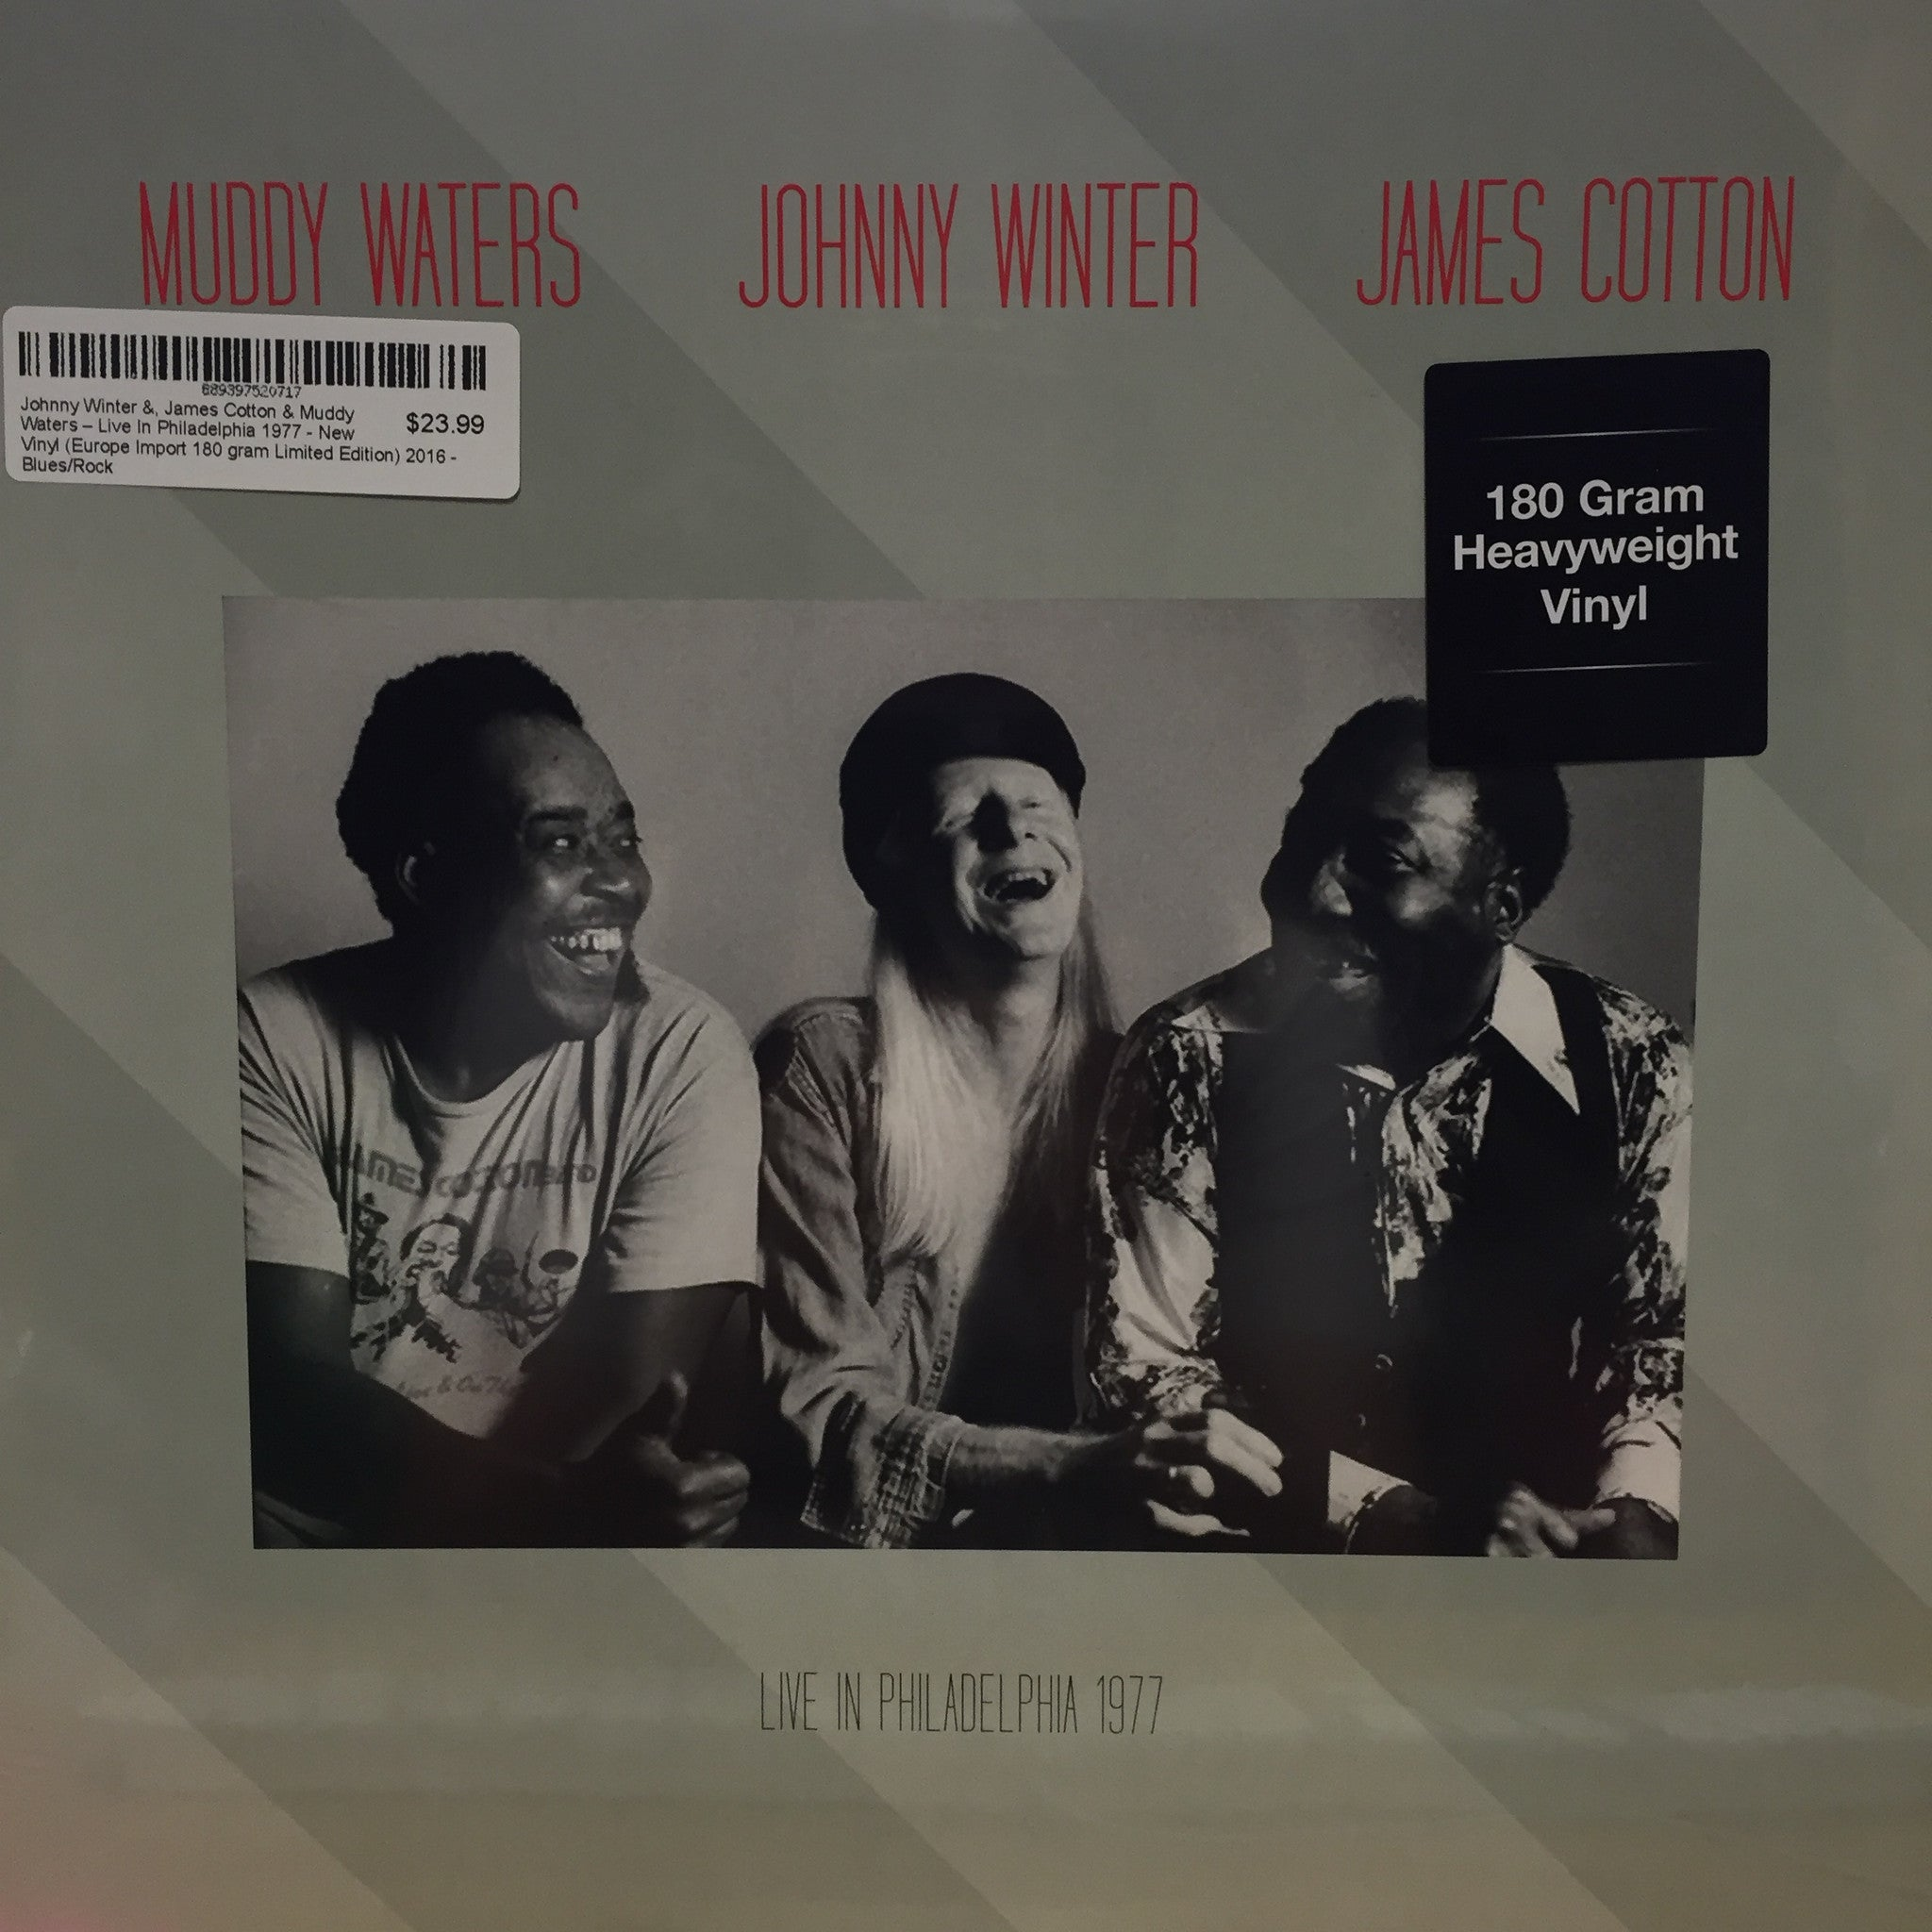 Johnny Winter &, James Cotton & Muddy Waters ‎– Live In Philadelphia 1977 - New Vinyl DOL (Europe Import 180gram Limited Edition) 2016 - Blues/Rock